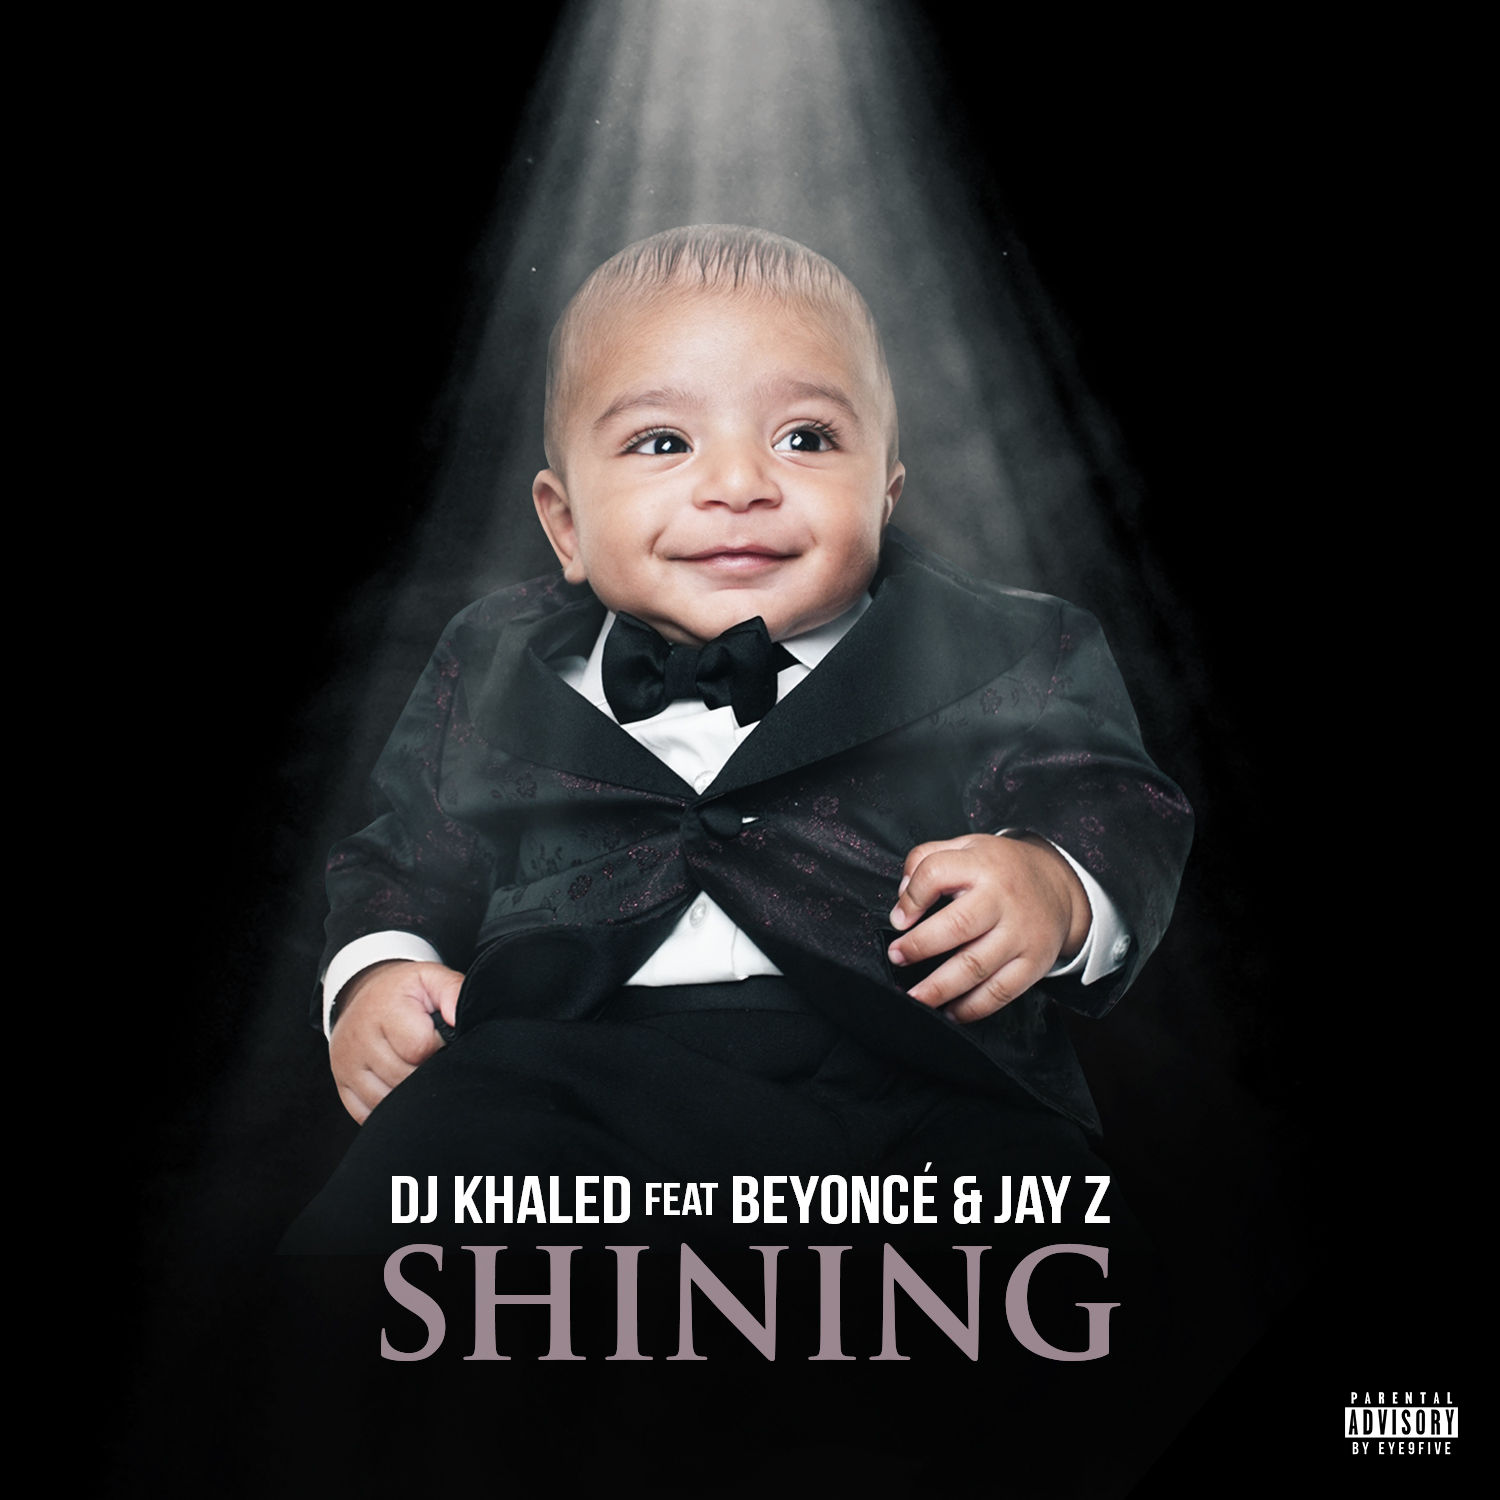 New Music DJ Khaled Shining Feat Beyonce Amp Jay Z